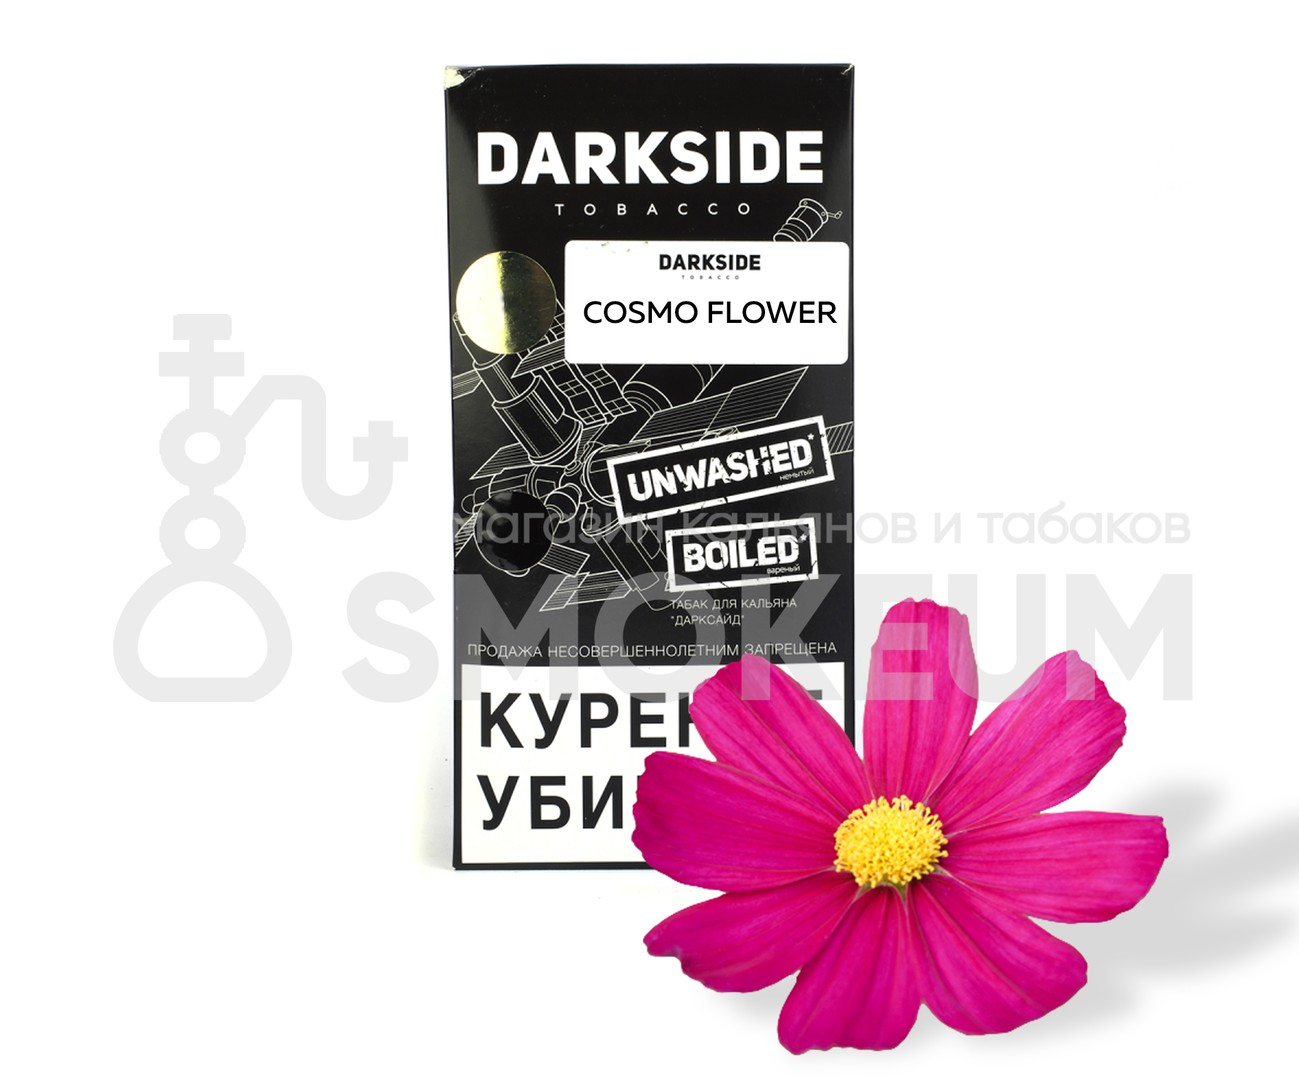 Табак Darkside (Soft) - Cosmo flower (Космо Флауэр) 250 гр